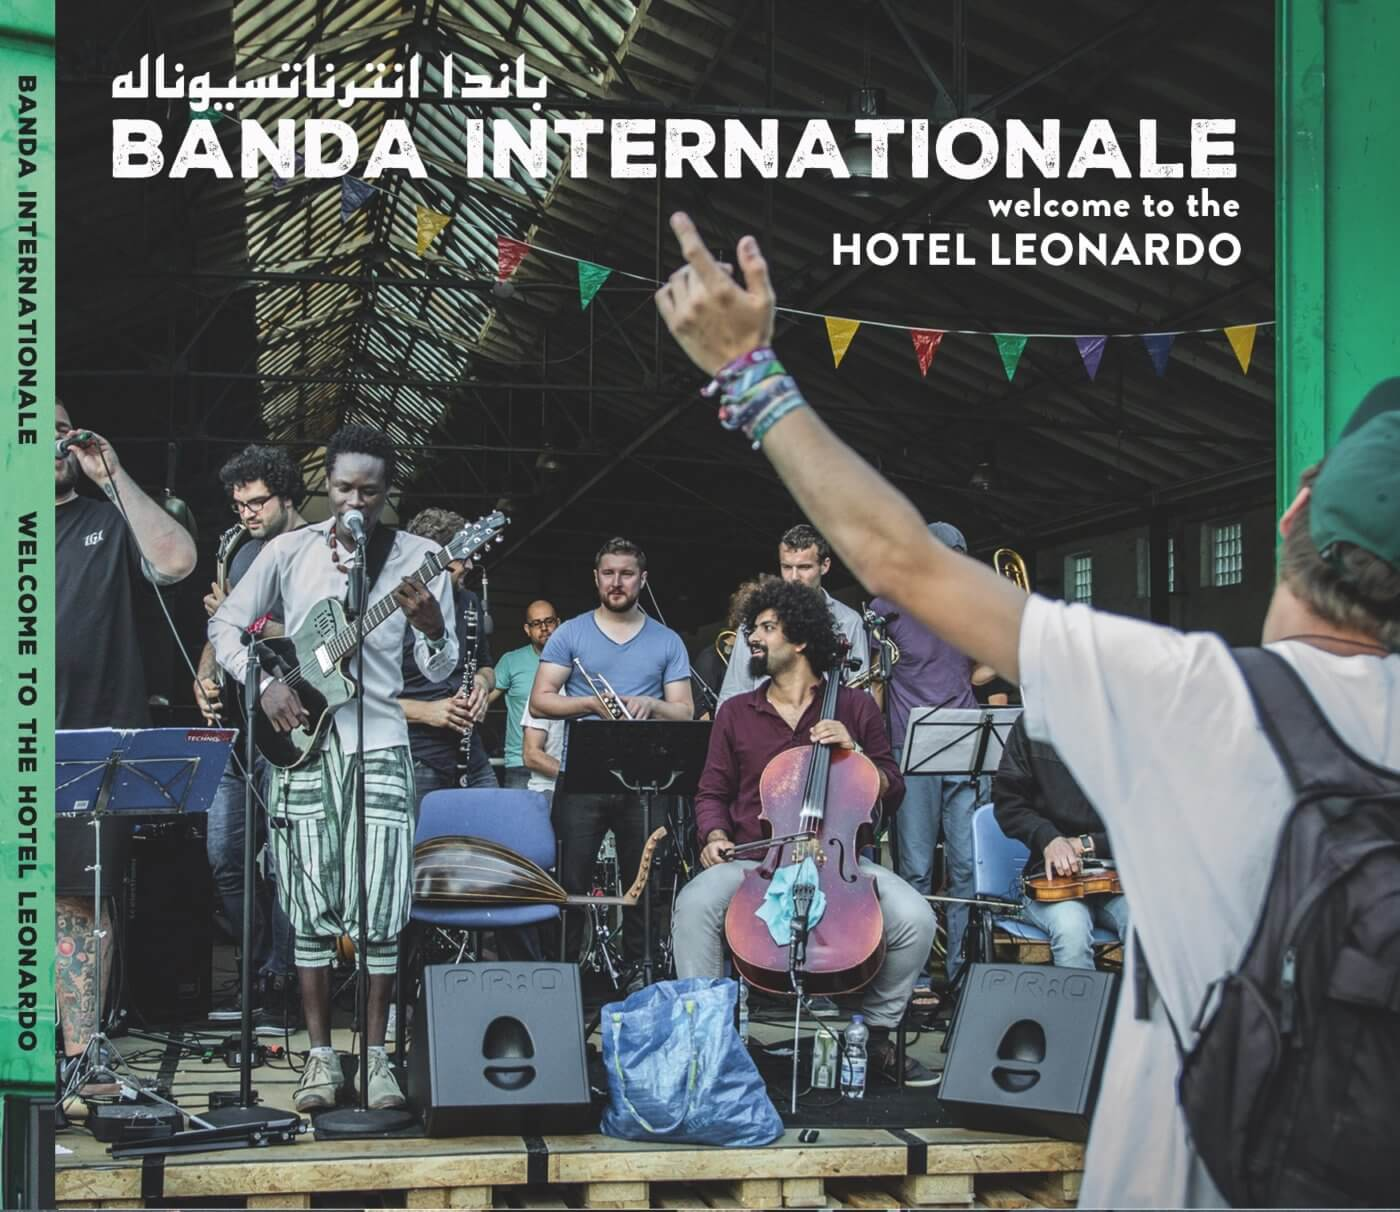 Fig. 1: Album cover Welcome to the Hotel Leonardo by Banda Internationale.